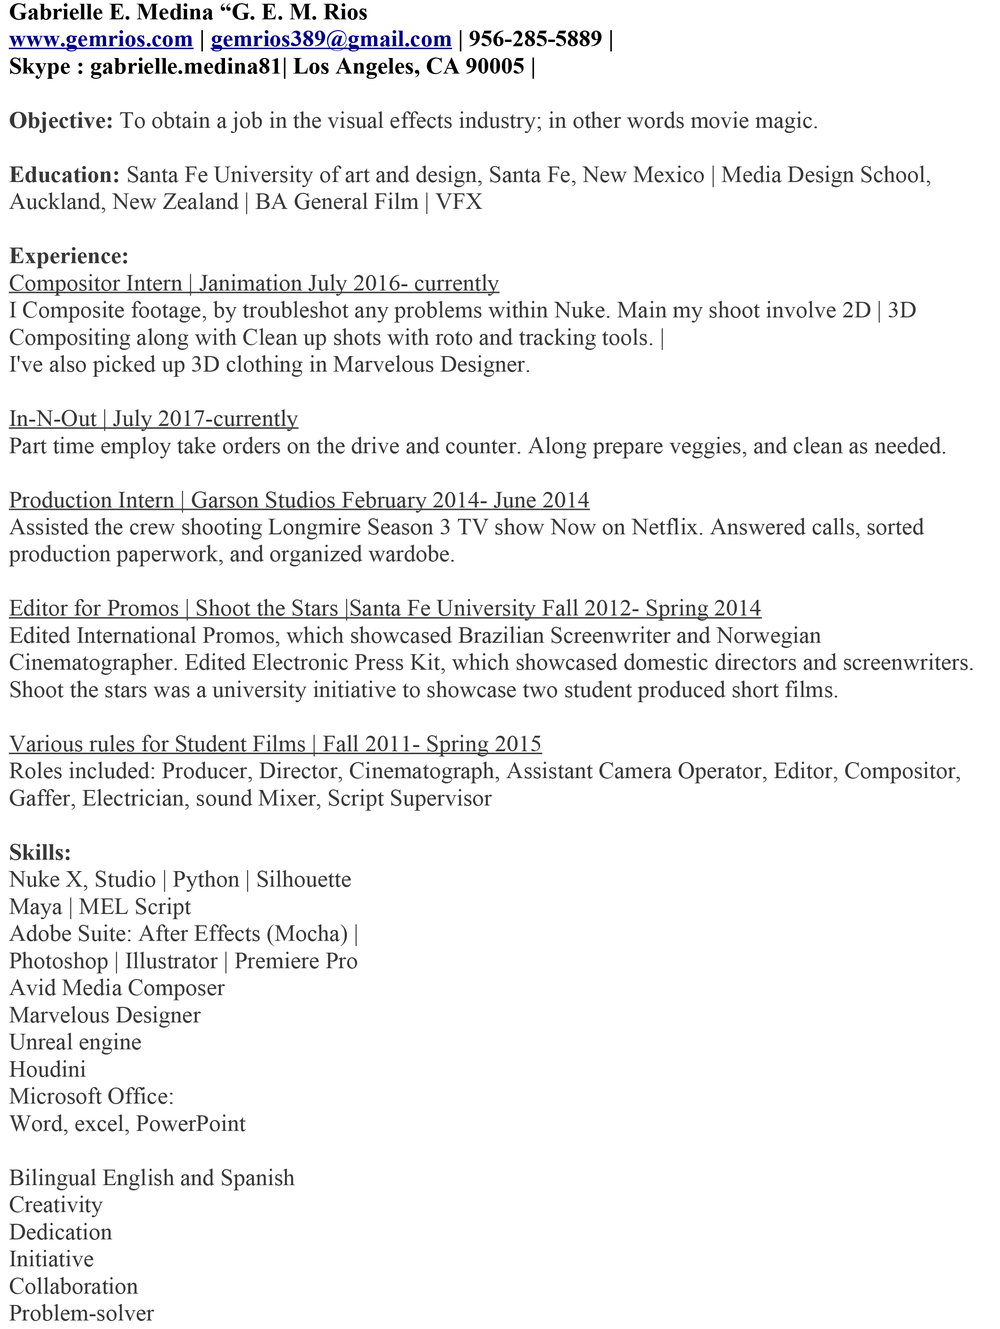 Exelent Vfx Compositor Cv Images - Professional Resume Examples ...